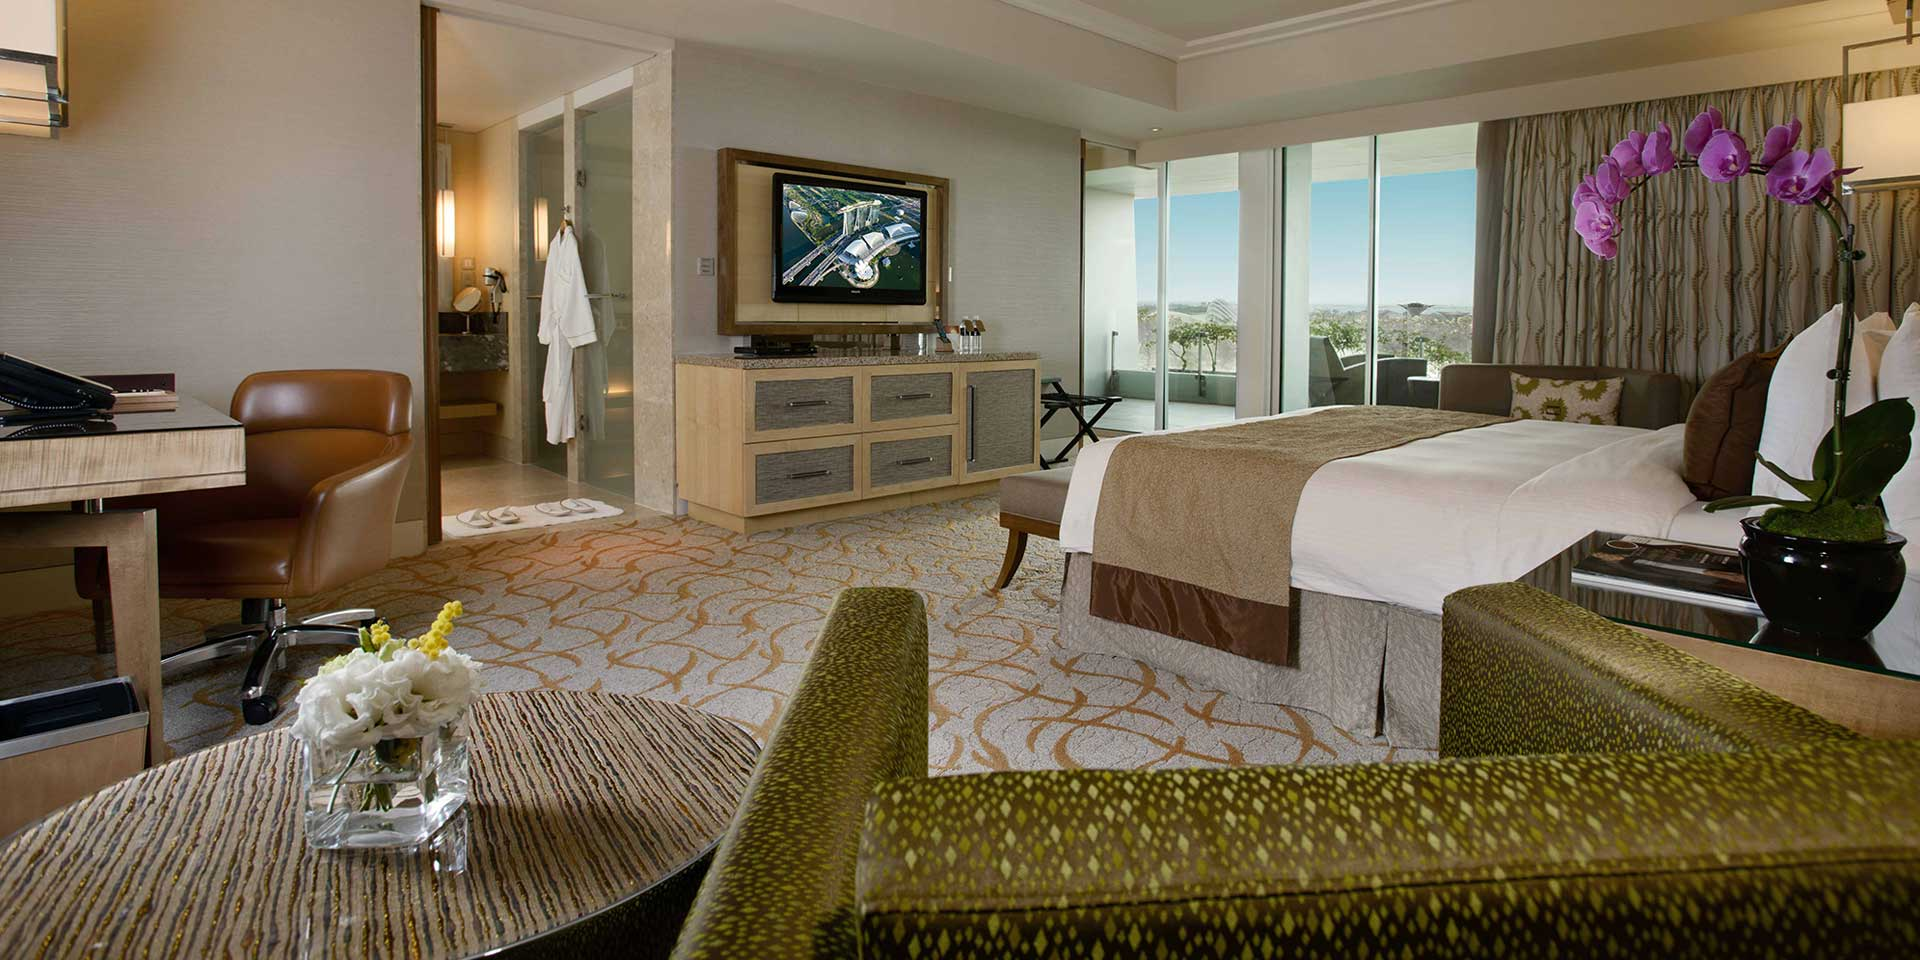 Good How To Redesign Your Room #1: Grand-club-room-view-two.jpg